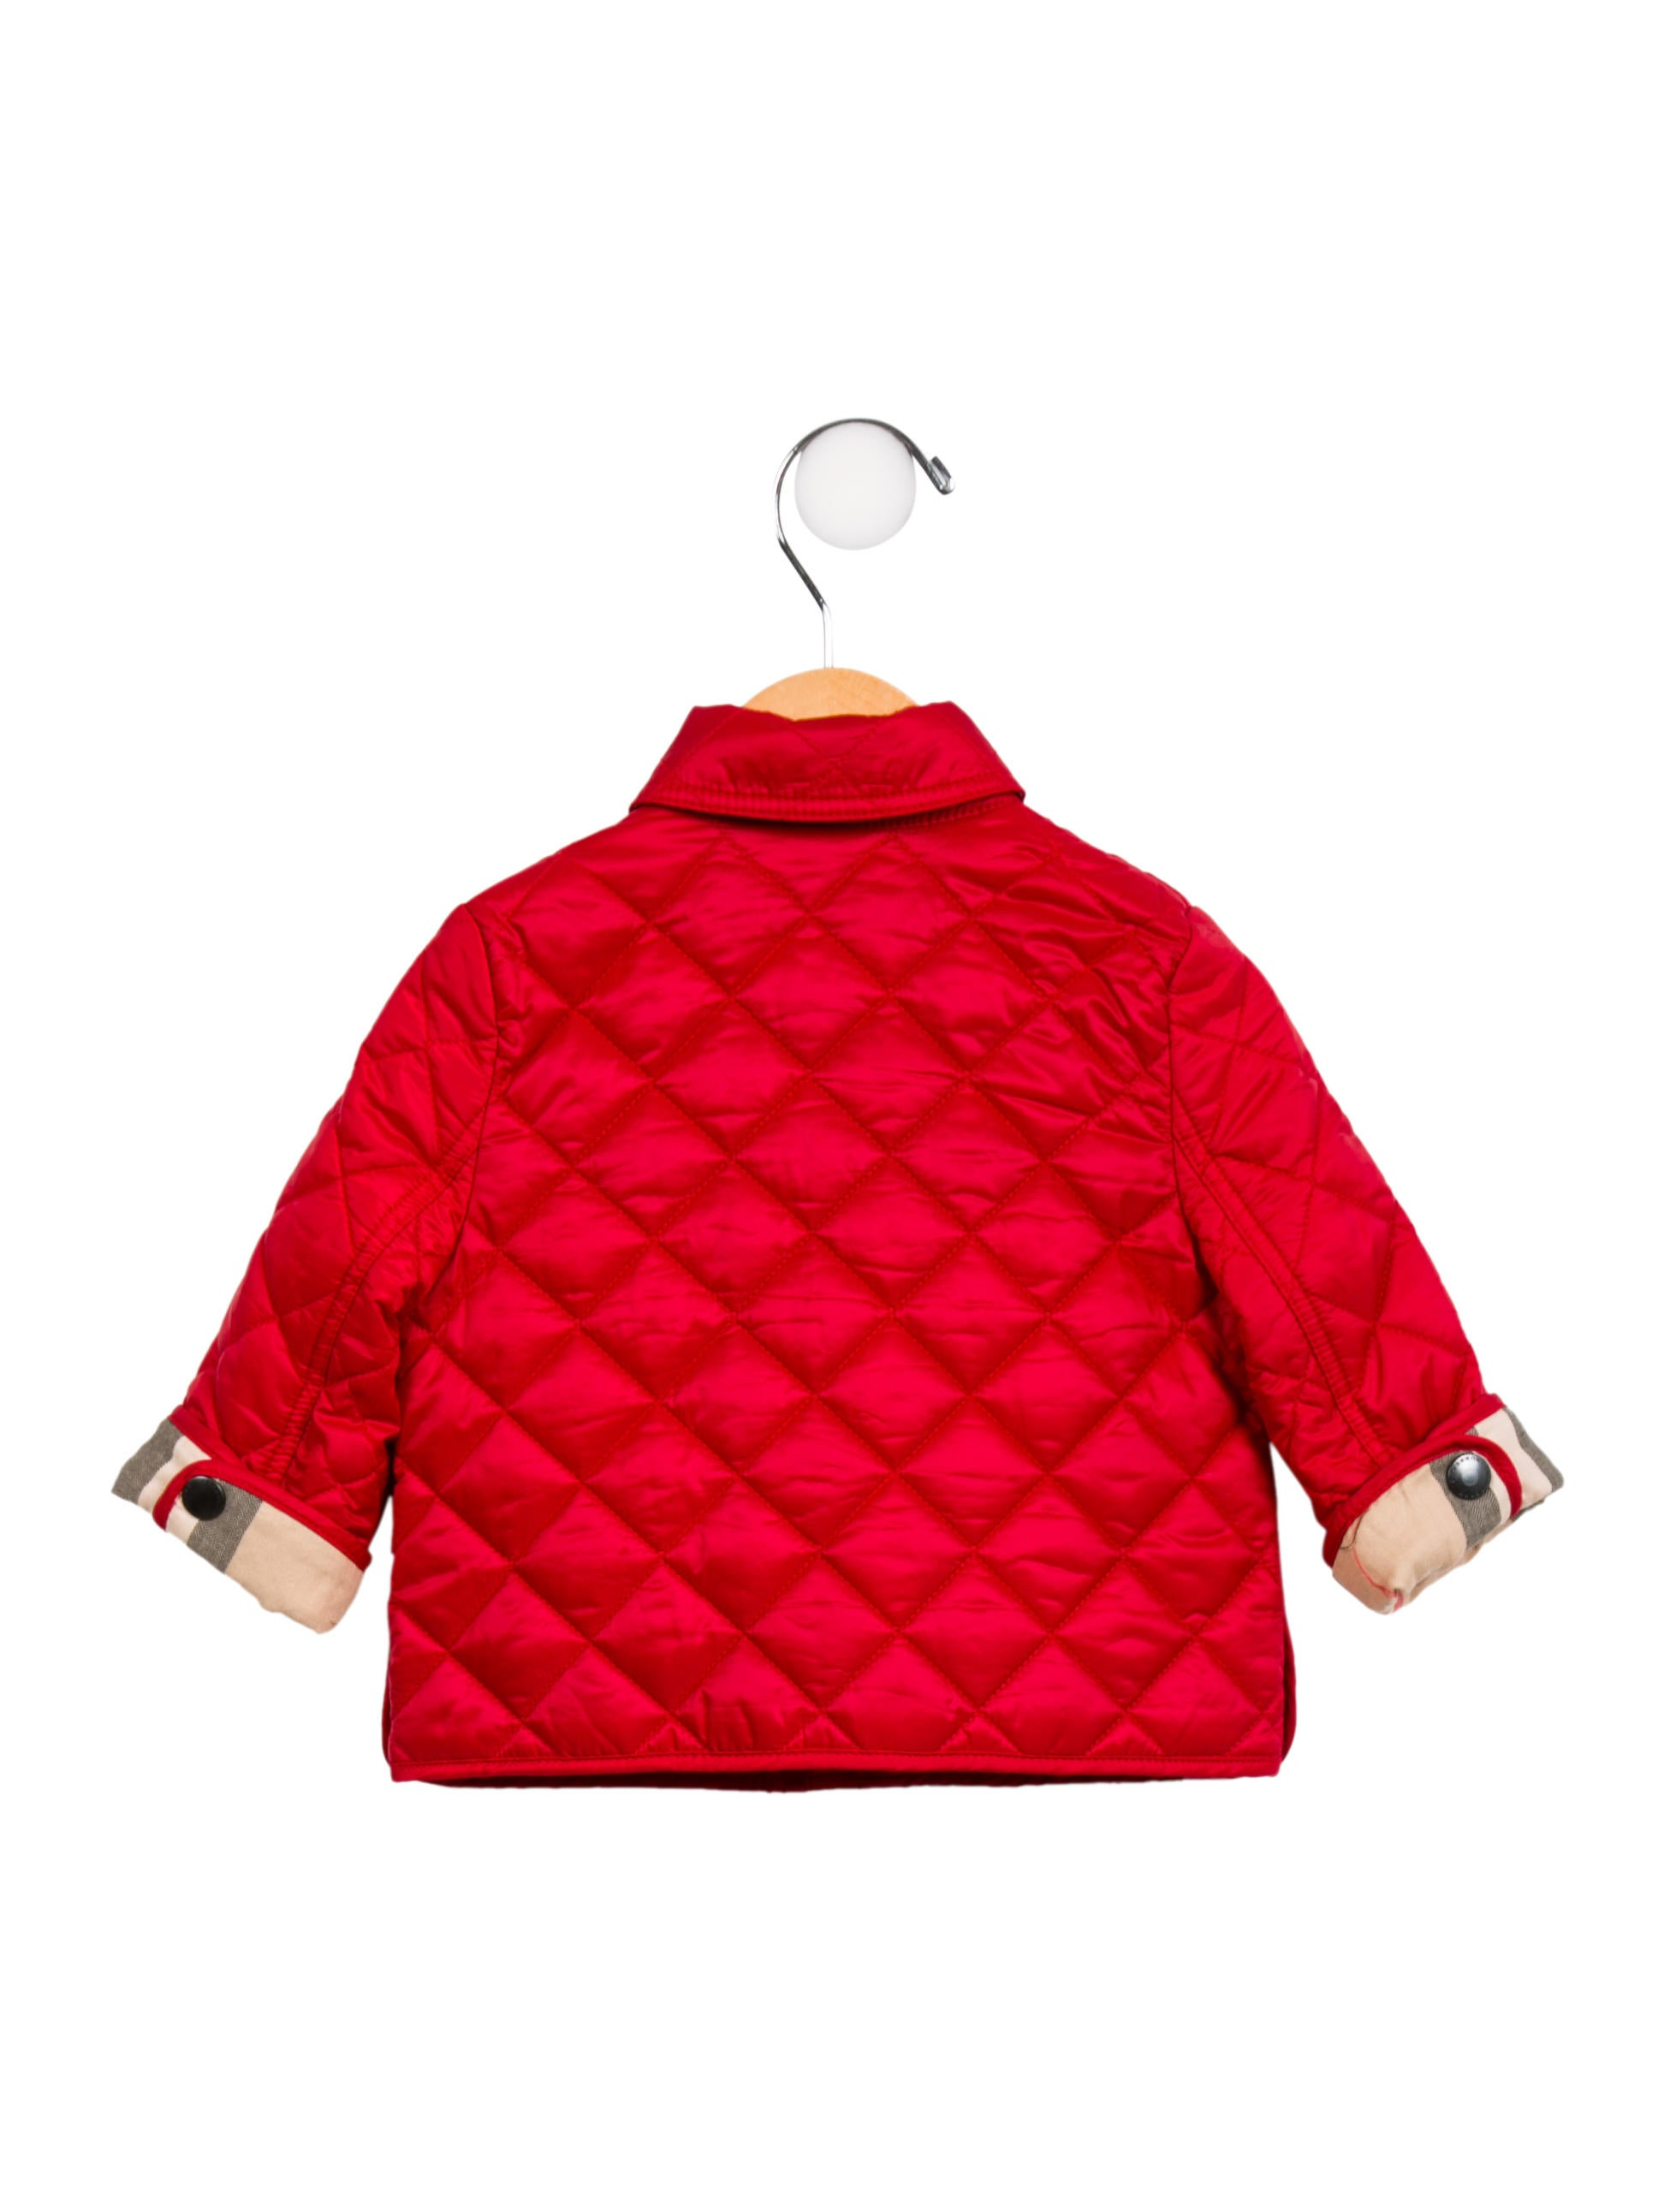 Burberry Boys Quilted Zip Up Jacket Boys Bur96532 The Realreal